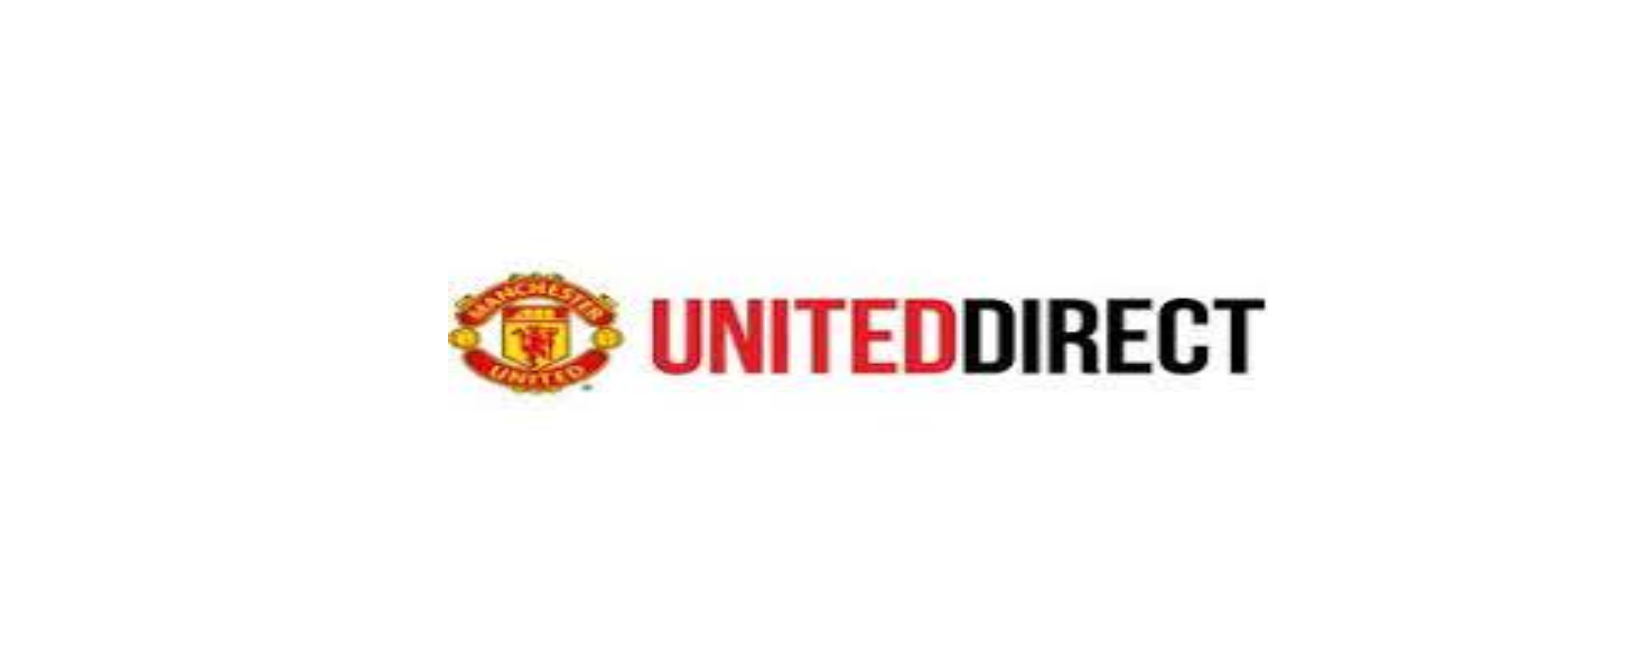 Manchester United Direct Store Discount Code 2021